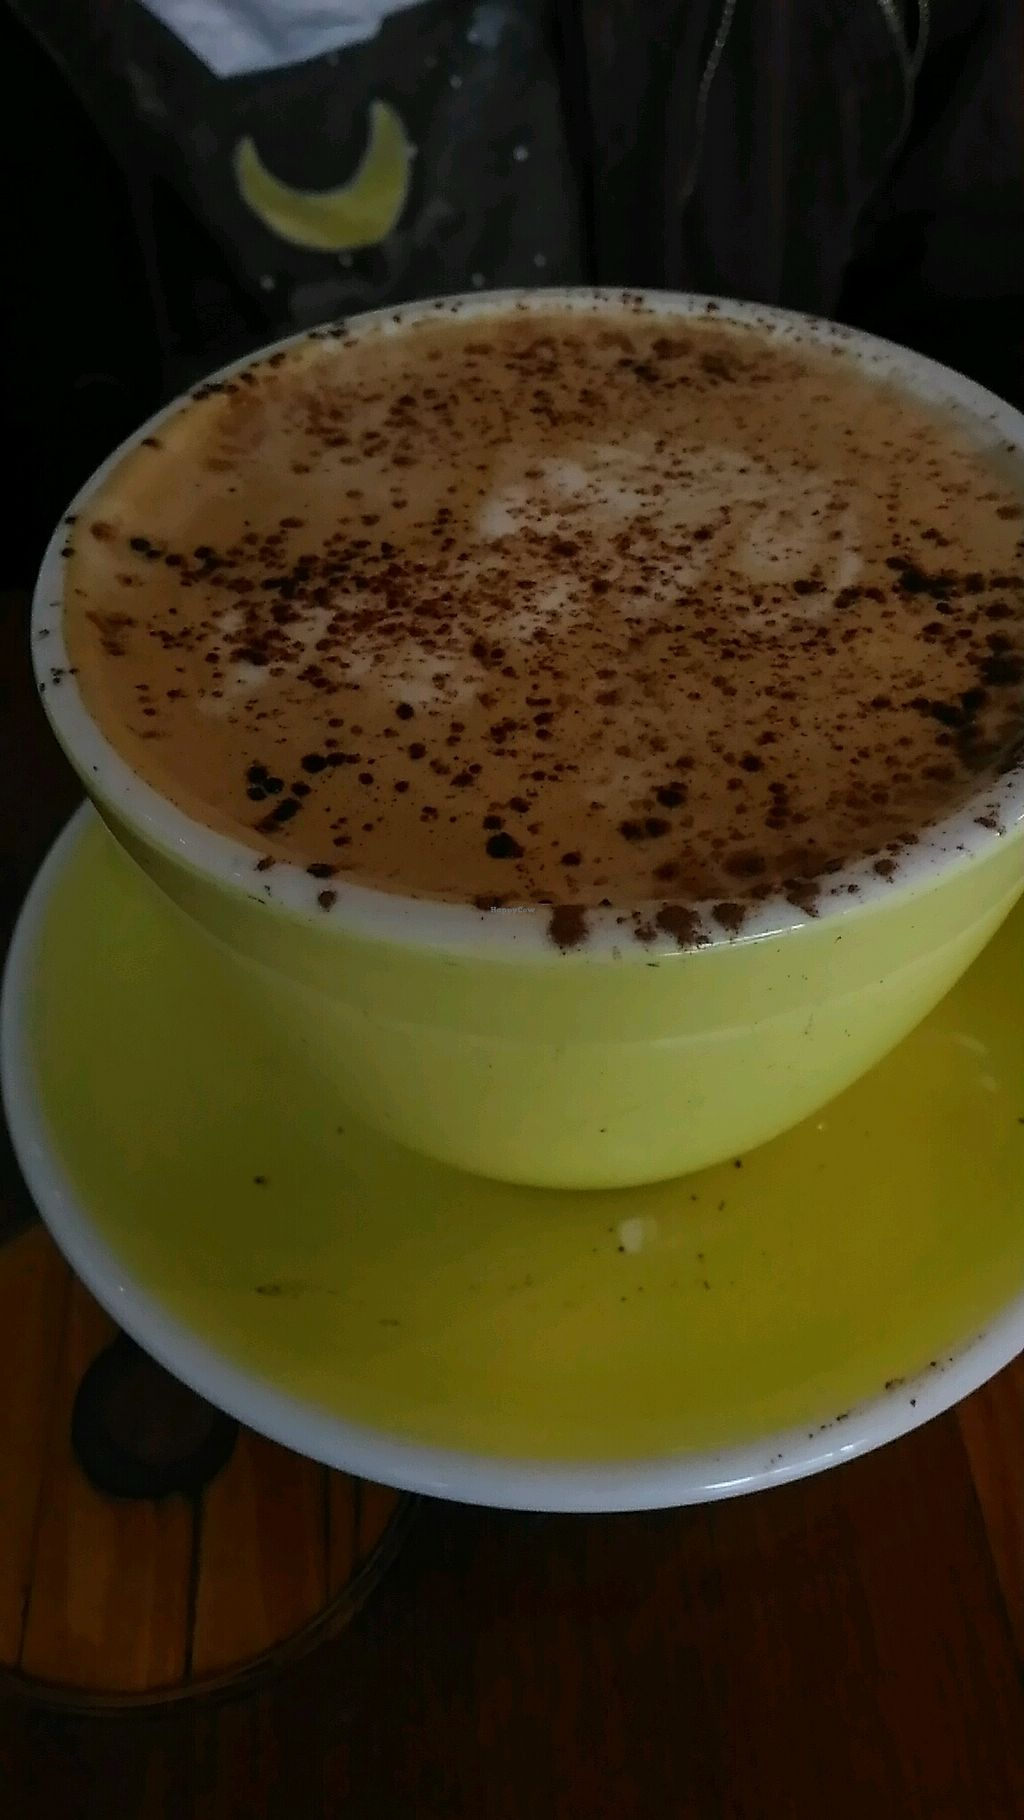 """Photo of Lucky Penny Coffee  by <a href=""""/members/profile/QuothTheRaven"""">QuothTheRaven</a> <br/>soy mocha <br/> September 28, 2017  - <a href='/contact/abuse/image/101859/309368'>Report</a>"""